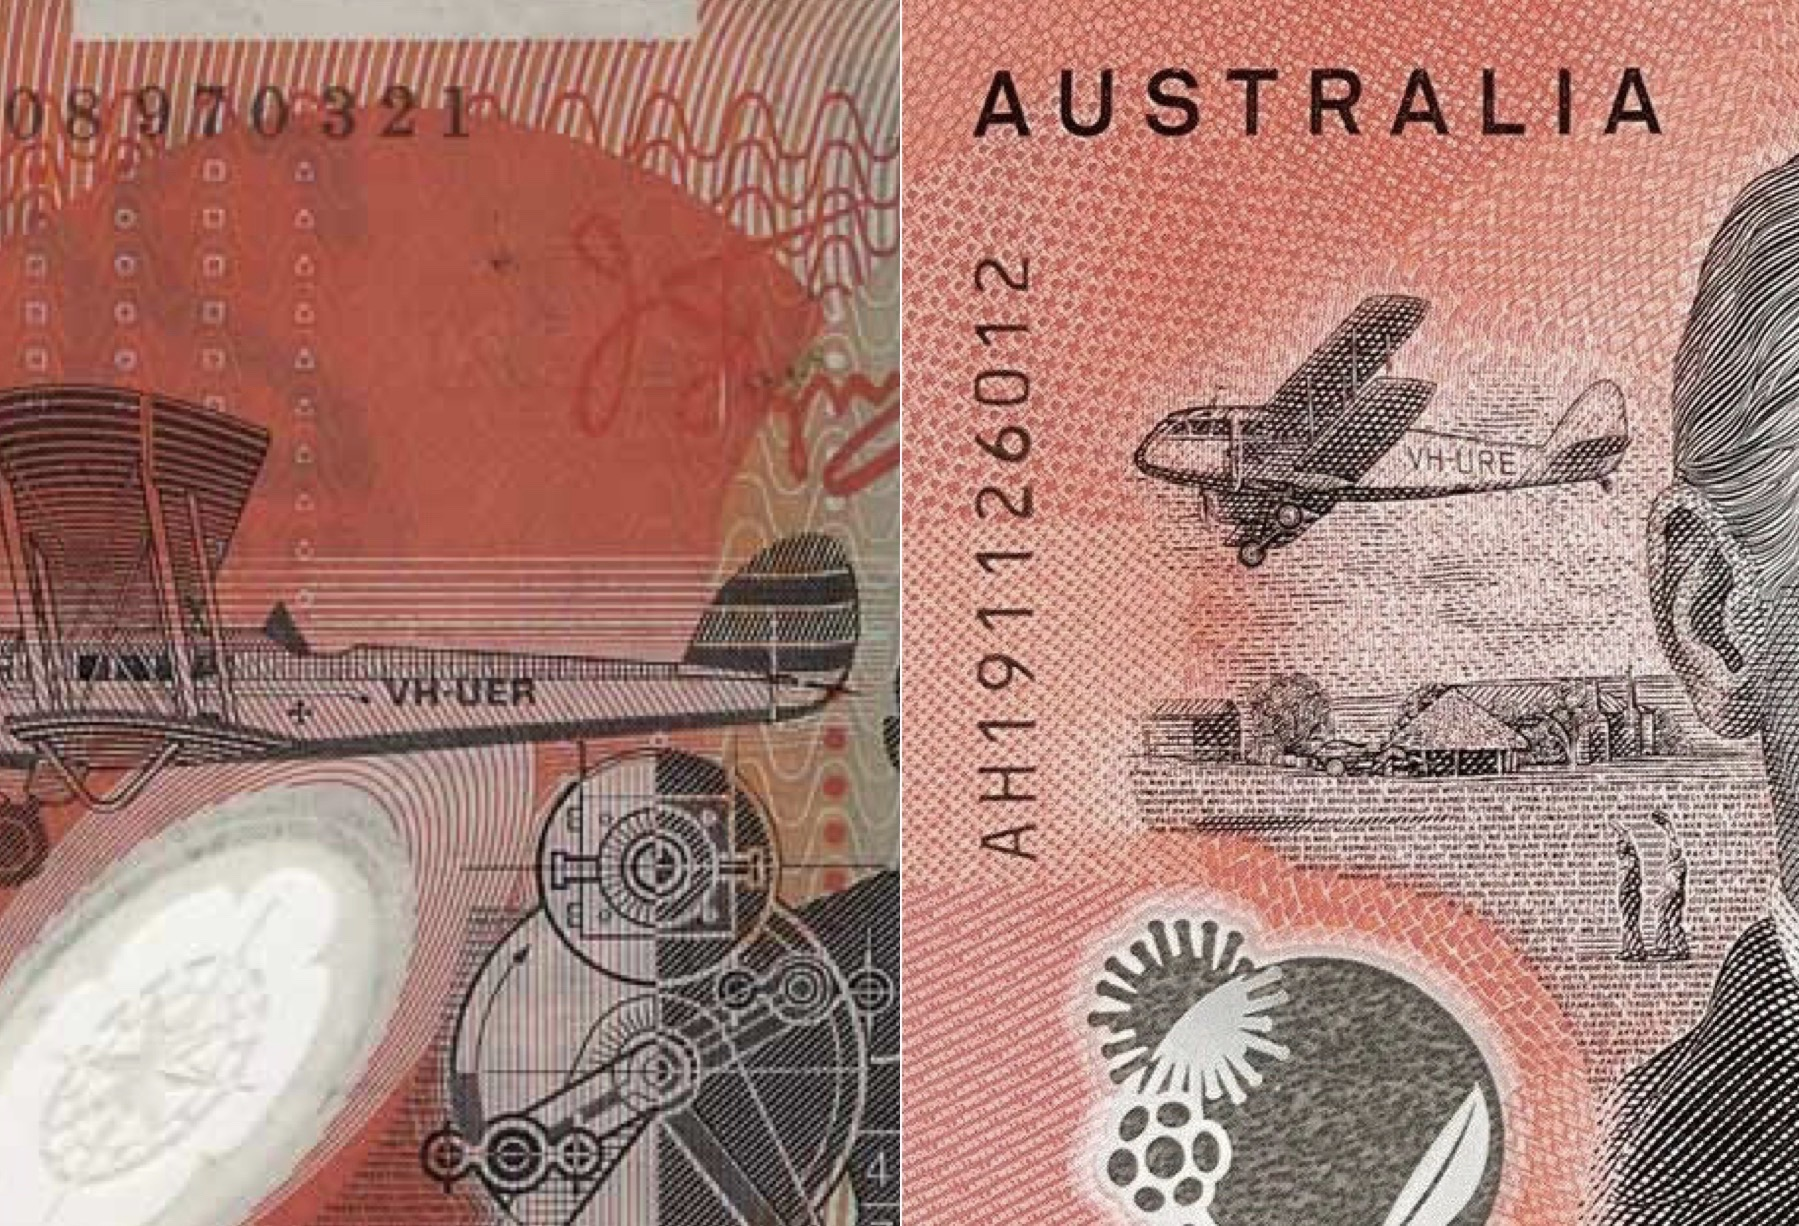 Why is the plane different on the new $20 note